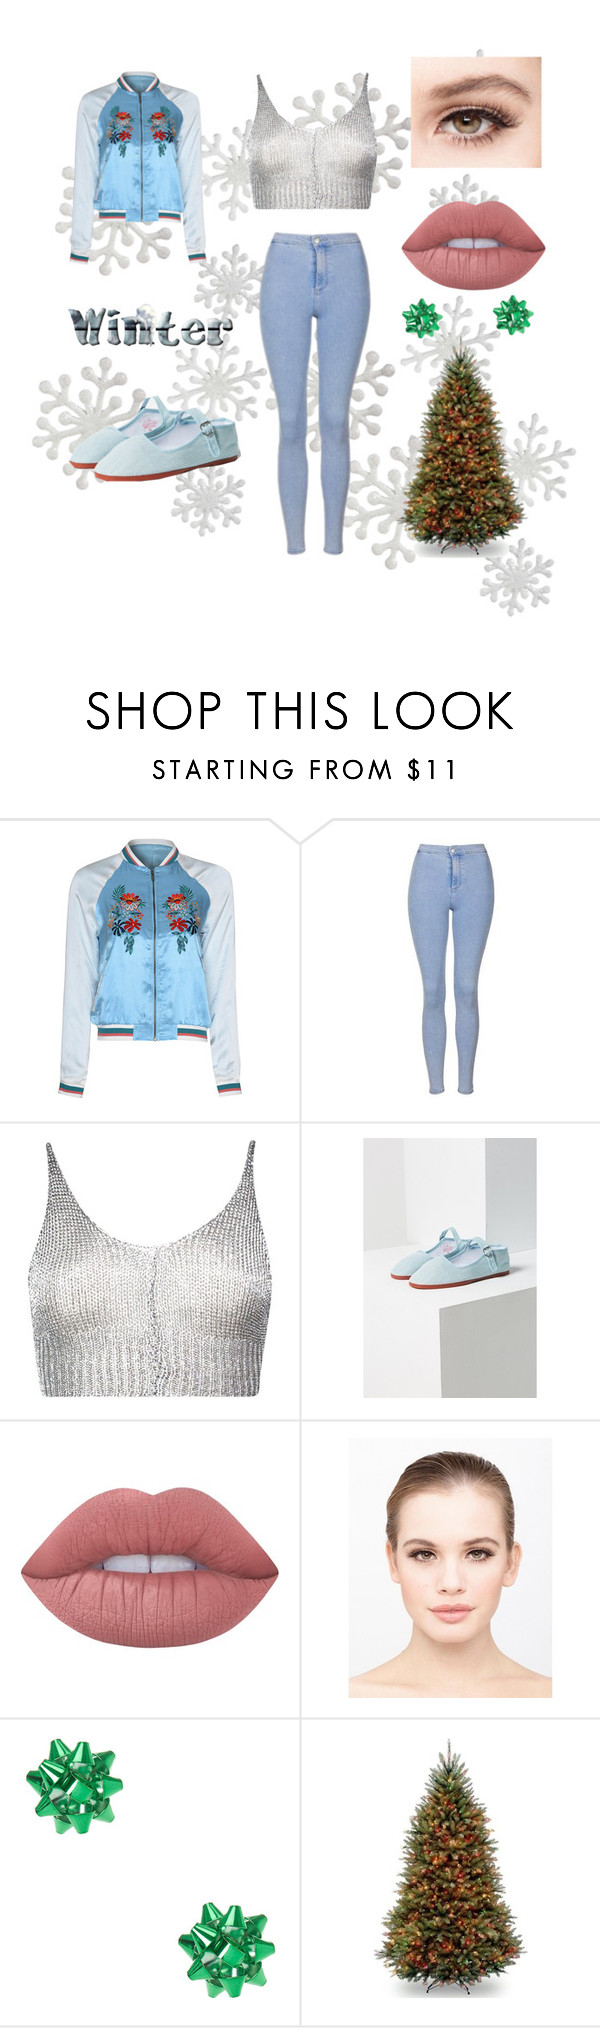 """winter sweater♡"" by wateringflowers ❤ liked on Polyvore featuring Glamorous, Topshop, Boohoo, Urban Outfitters, Lime Crime and eylure"